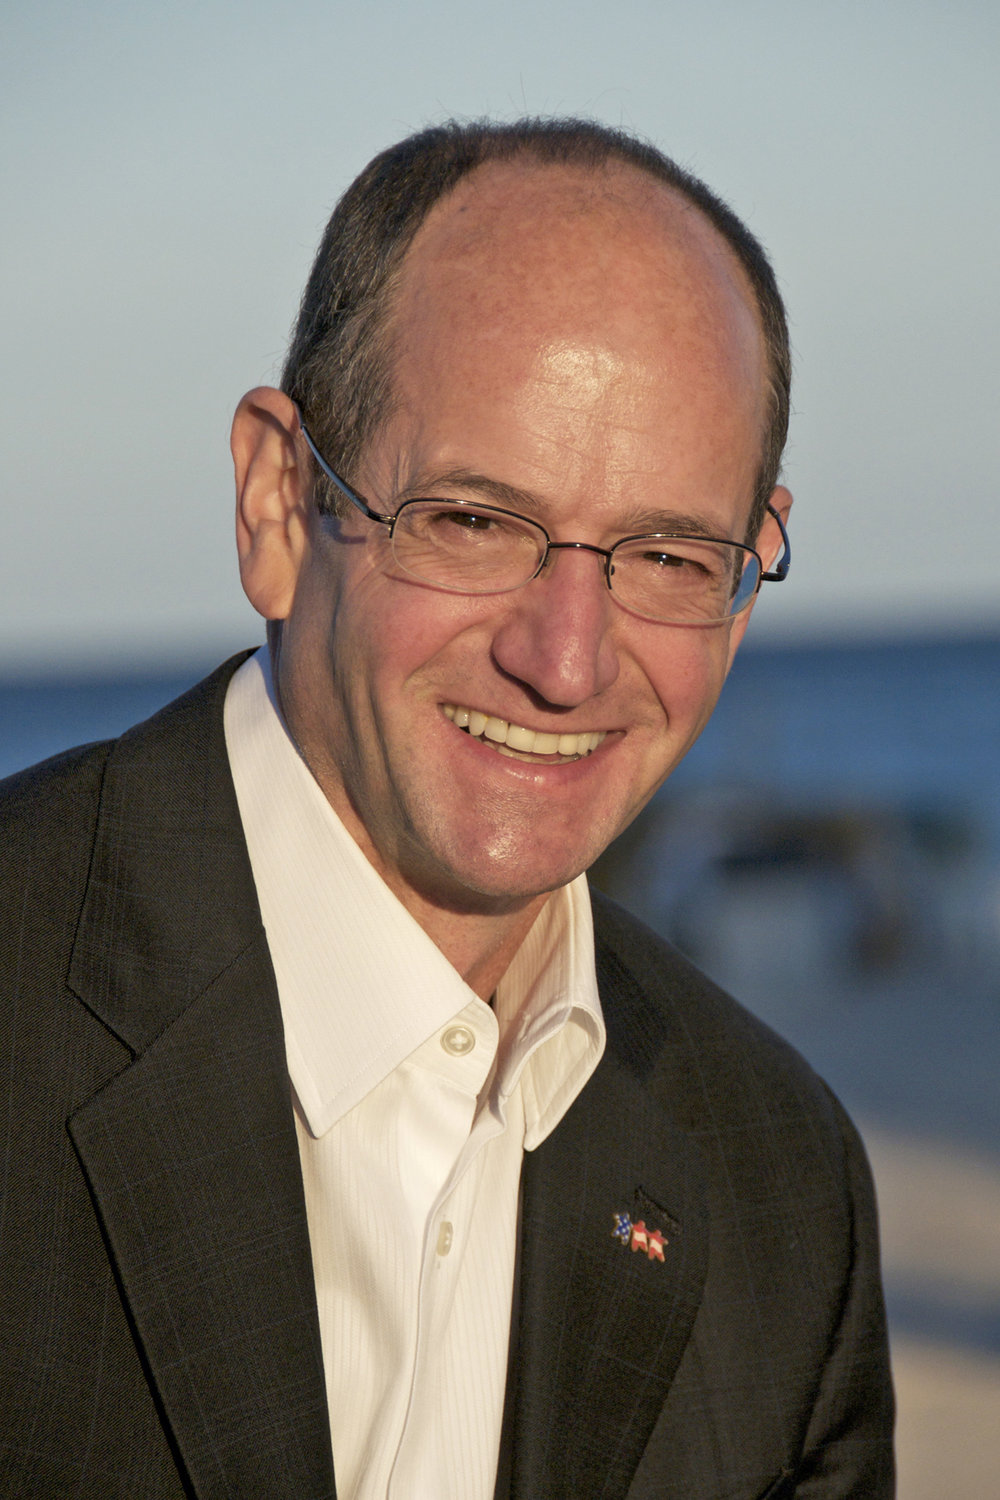 HAL ORNSTEIN, DPM, FASPS, FAPWCA,  MANAGING PARTNER